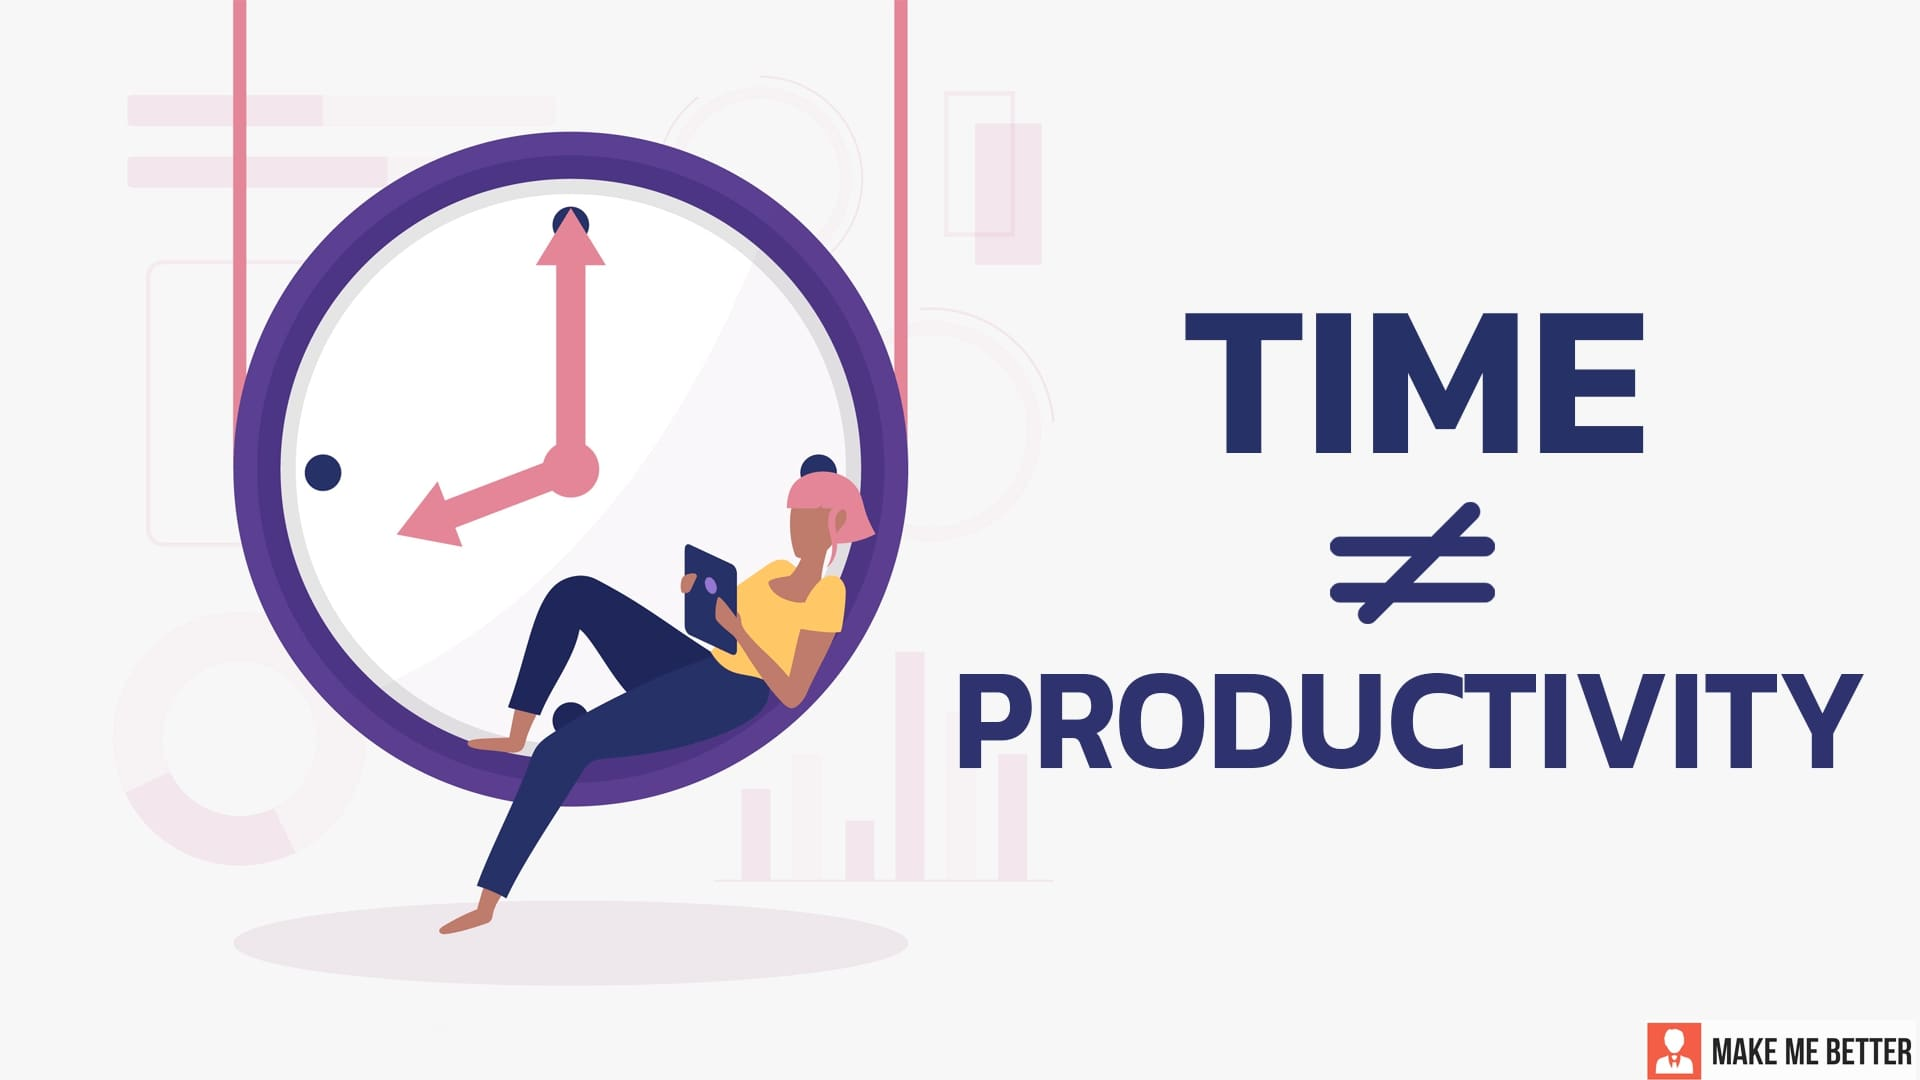 Time is not a measure of productivity